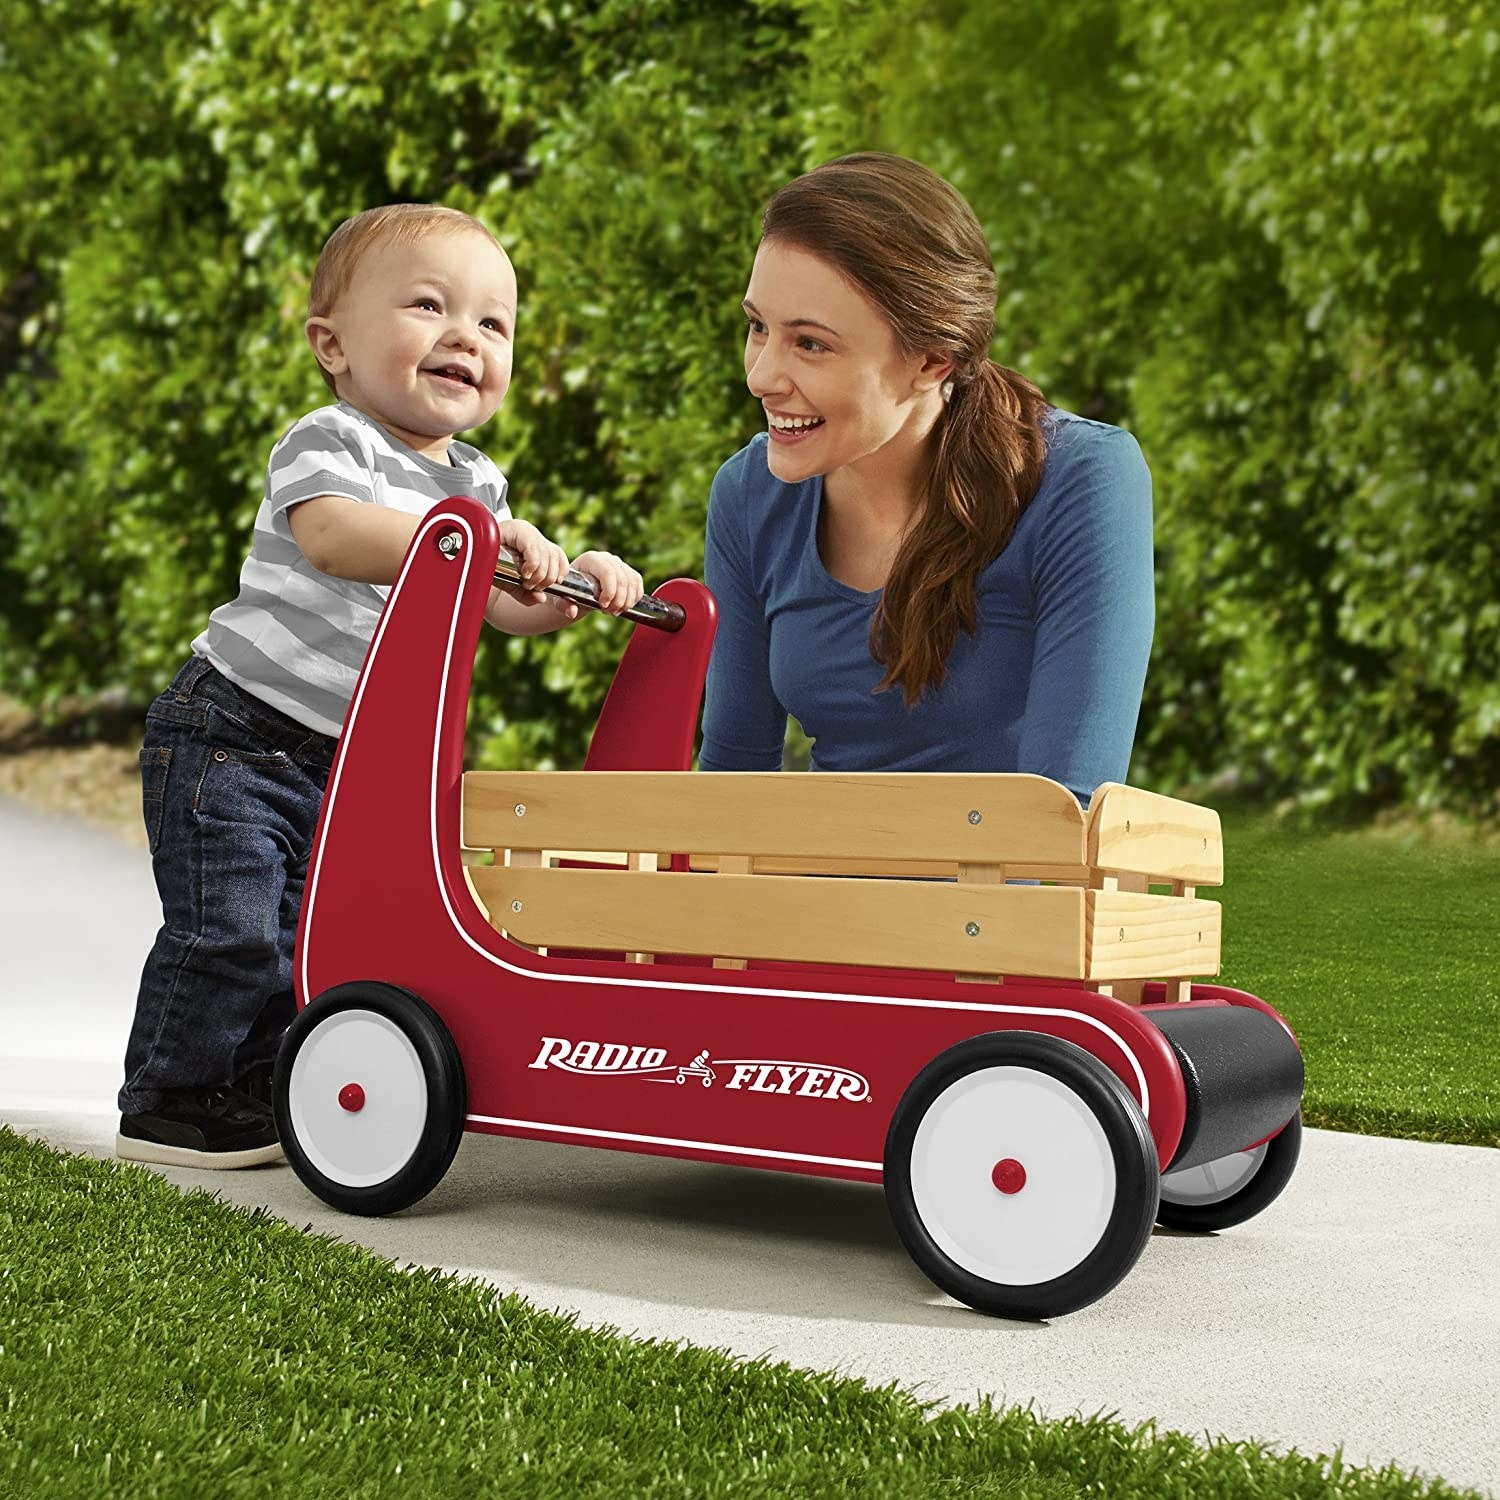 Model and child playing with red radio flyer wagon with side wood paneling